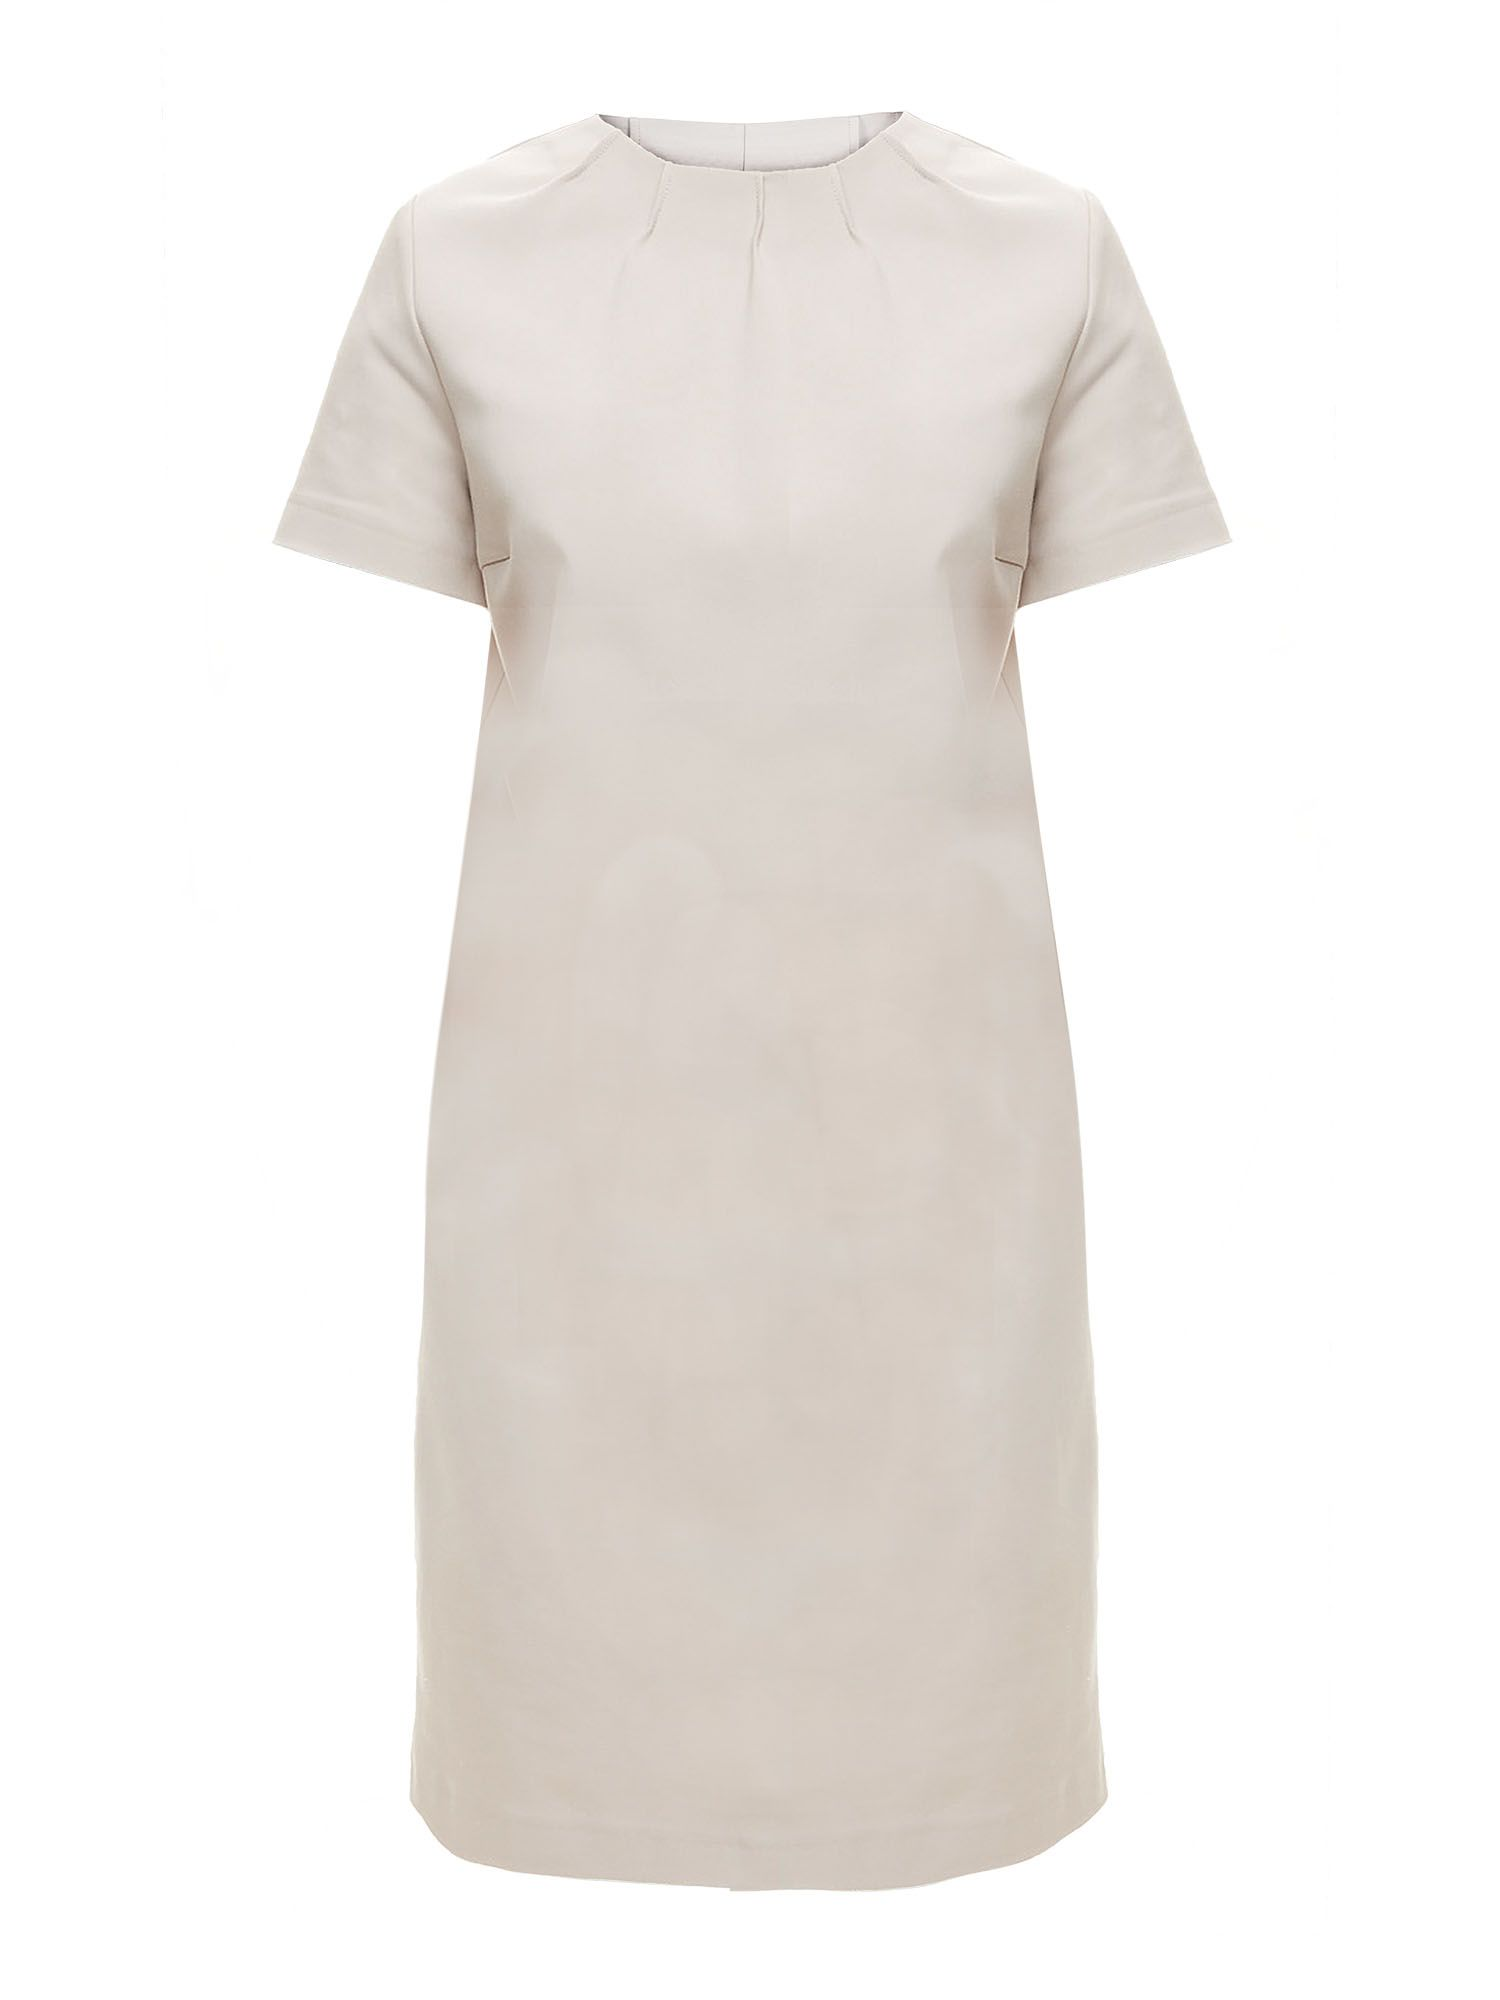 Stefanel Short-Sleeve Dress, White